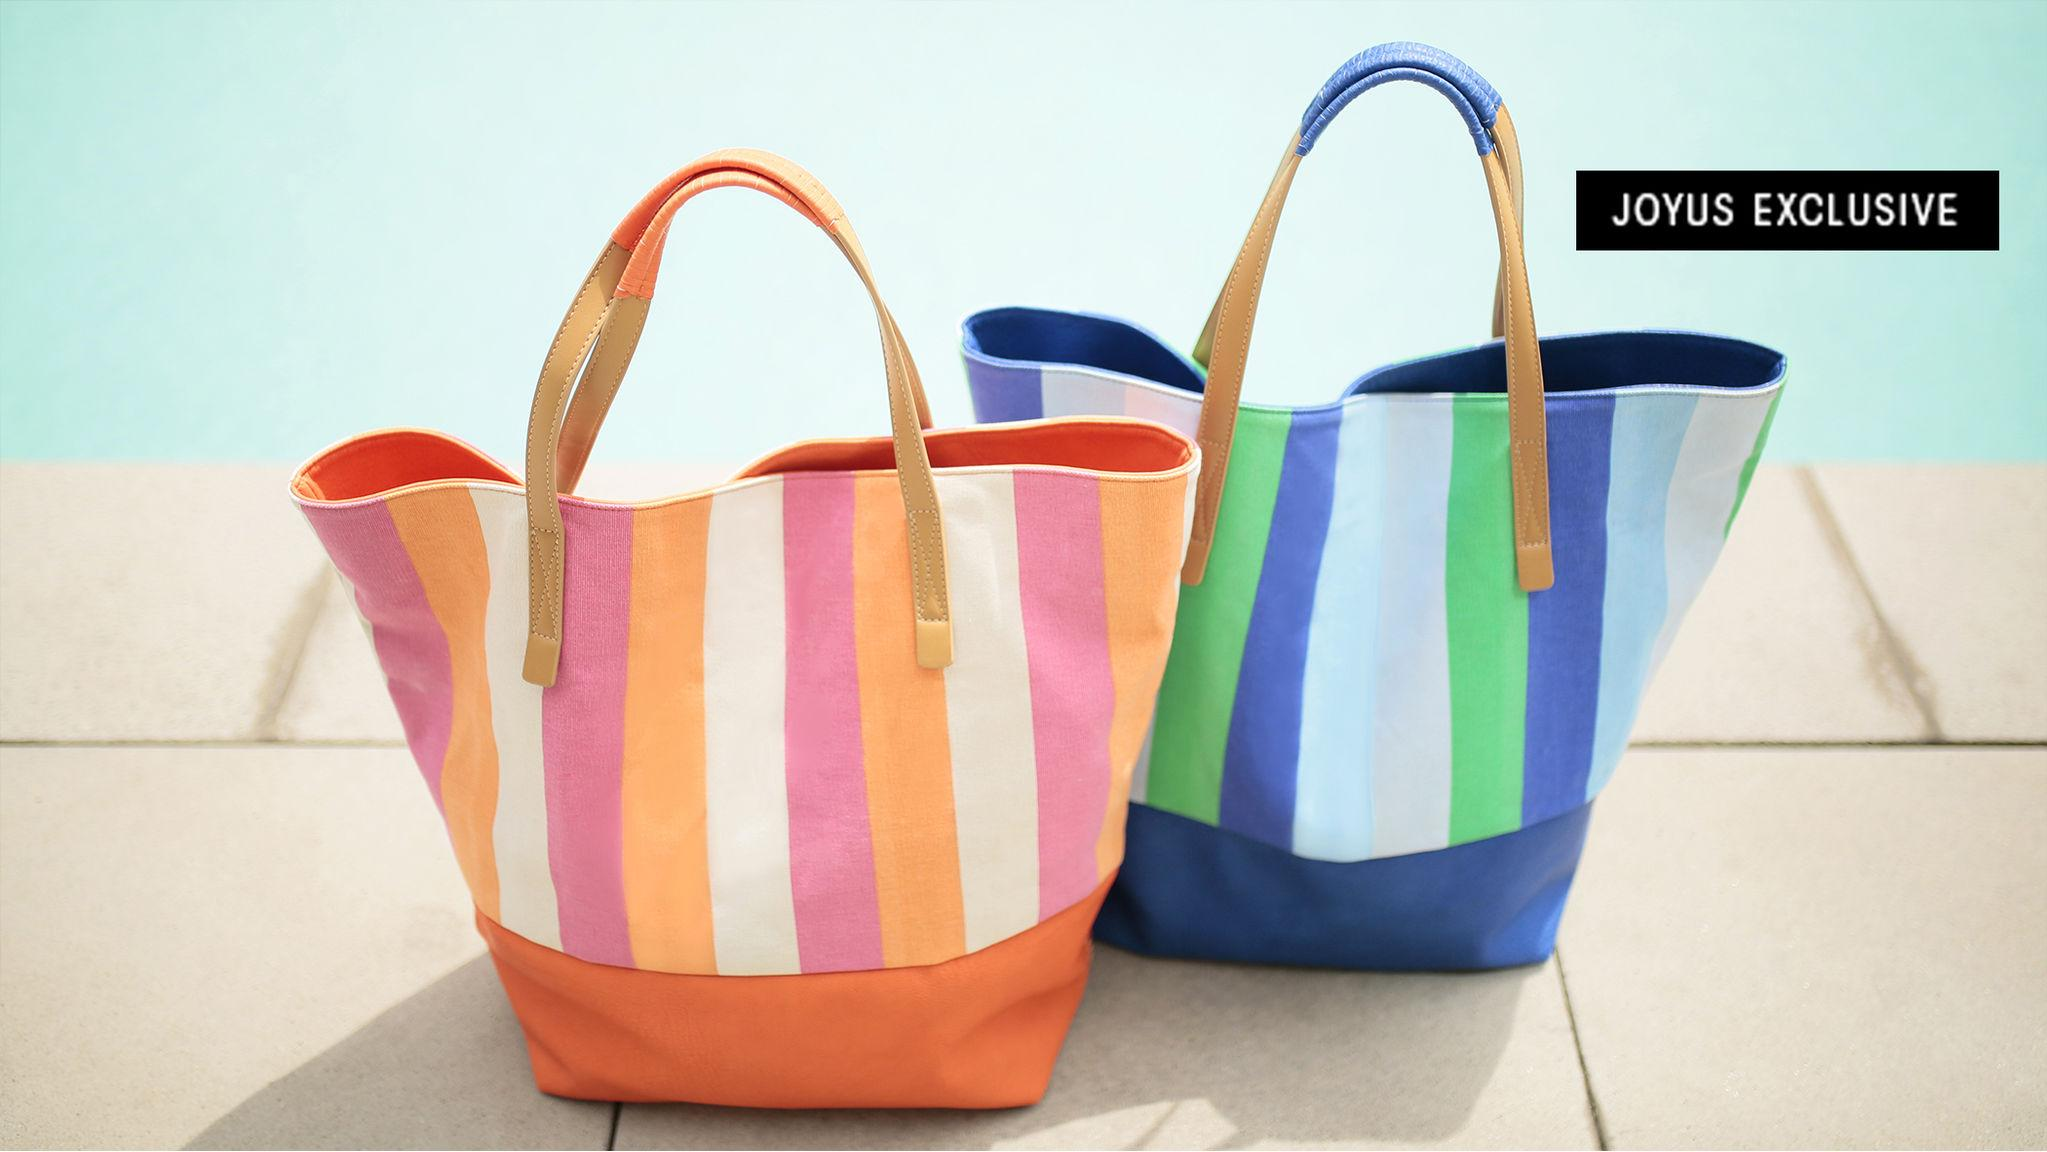 The Perfect Tote for Vacays and Staycays